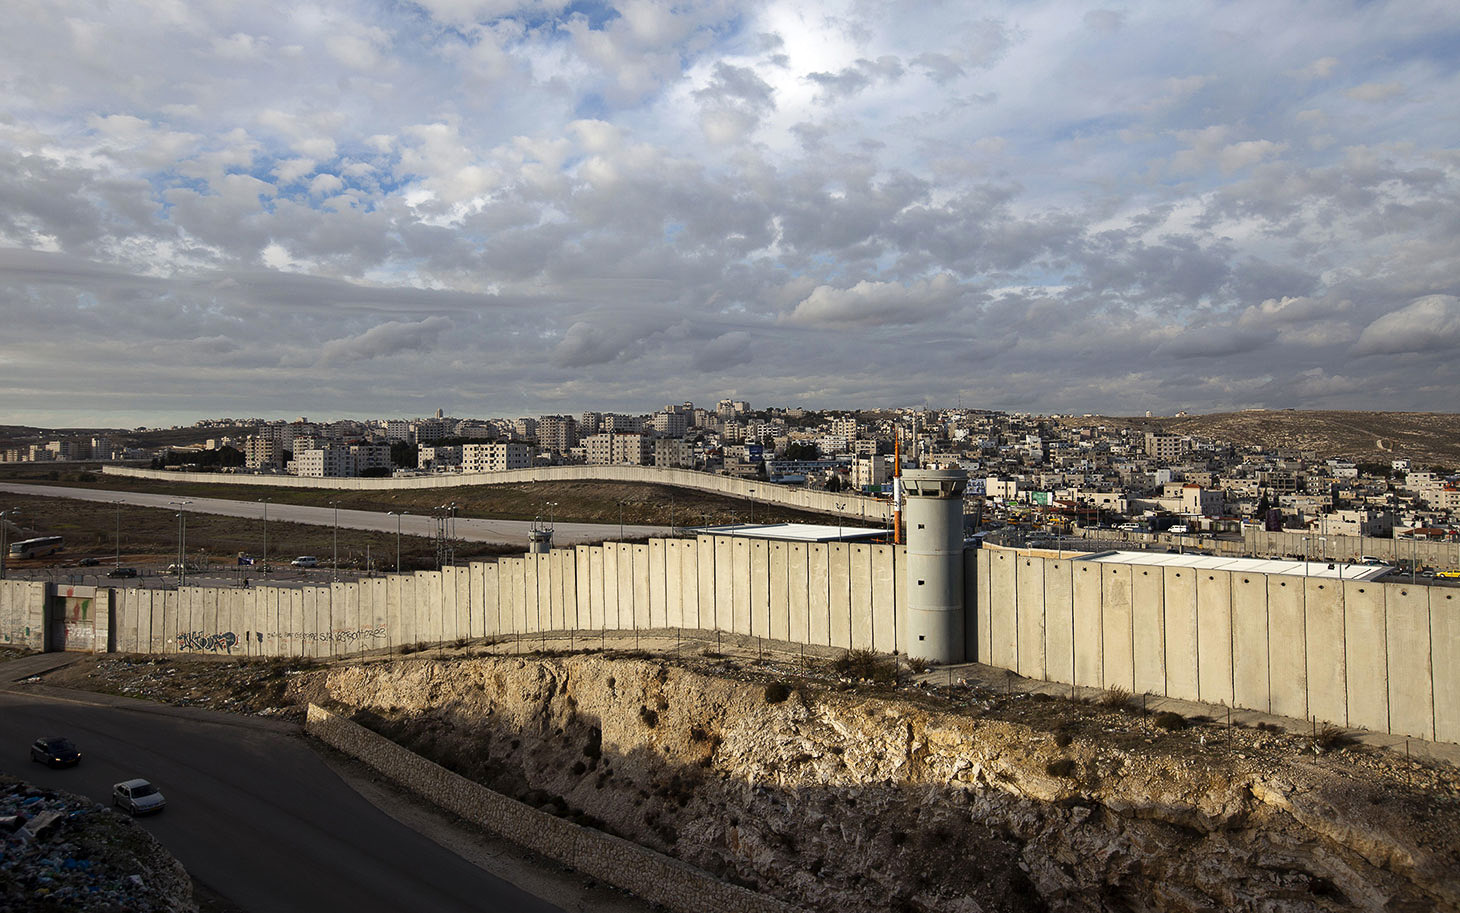 ISRAEL AND IMMIGRATION